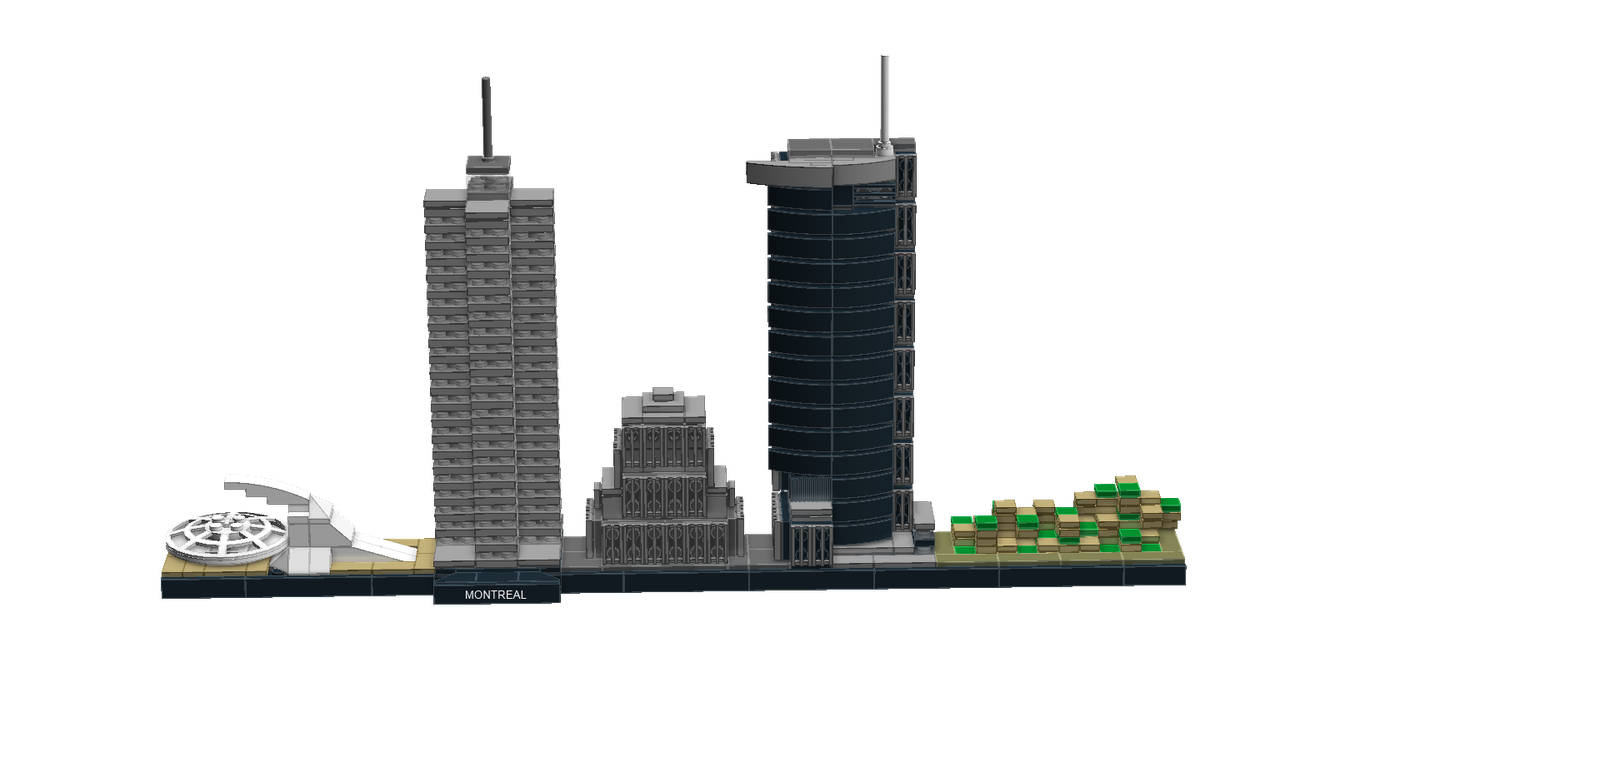 Transparent building skyline. Lego ideas product montreal